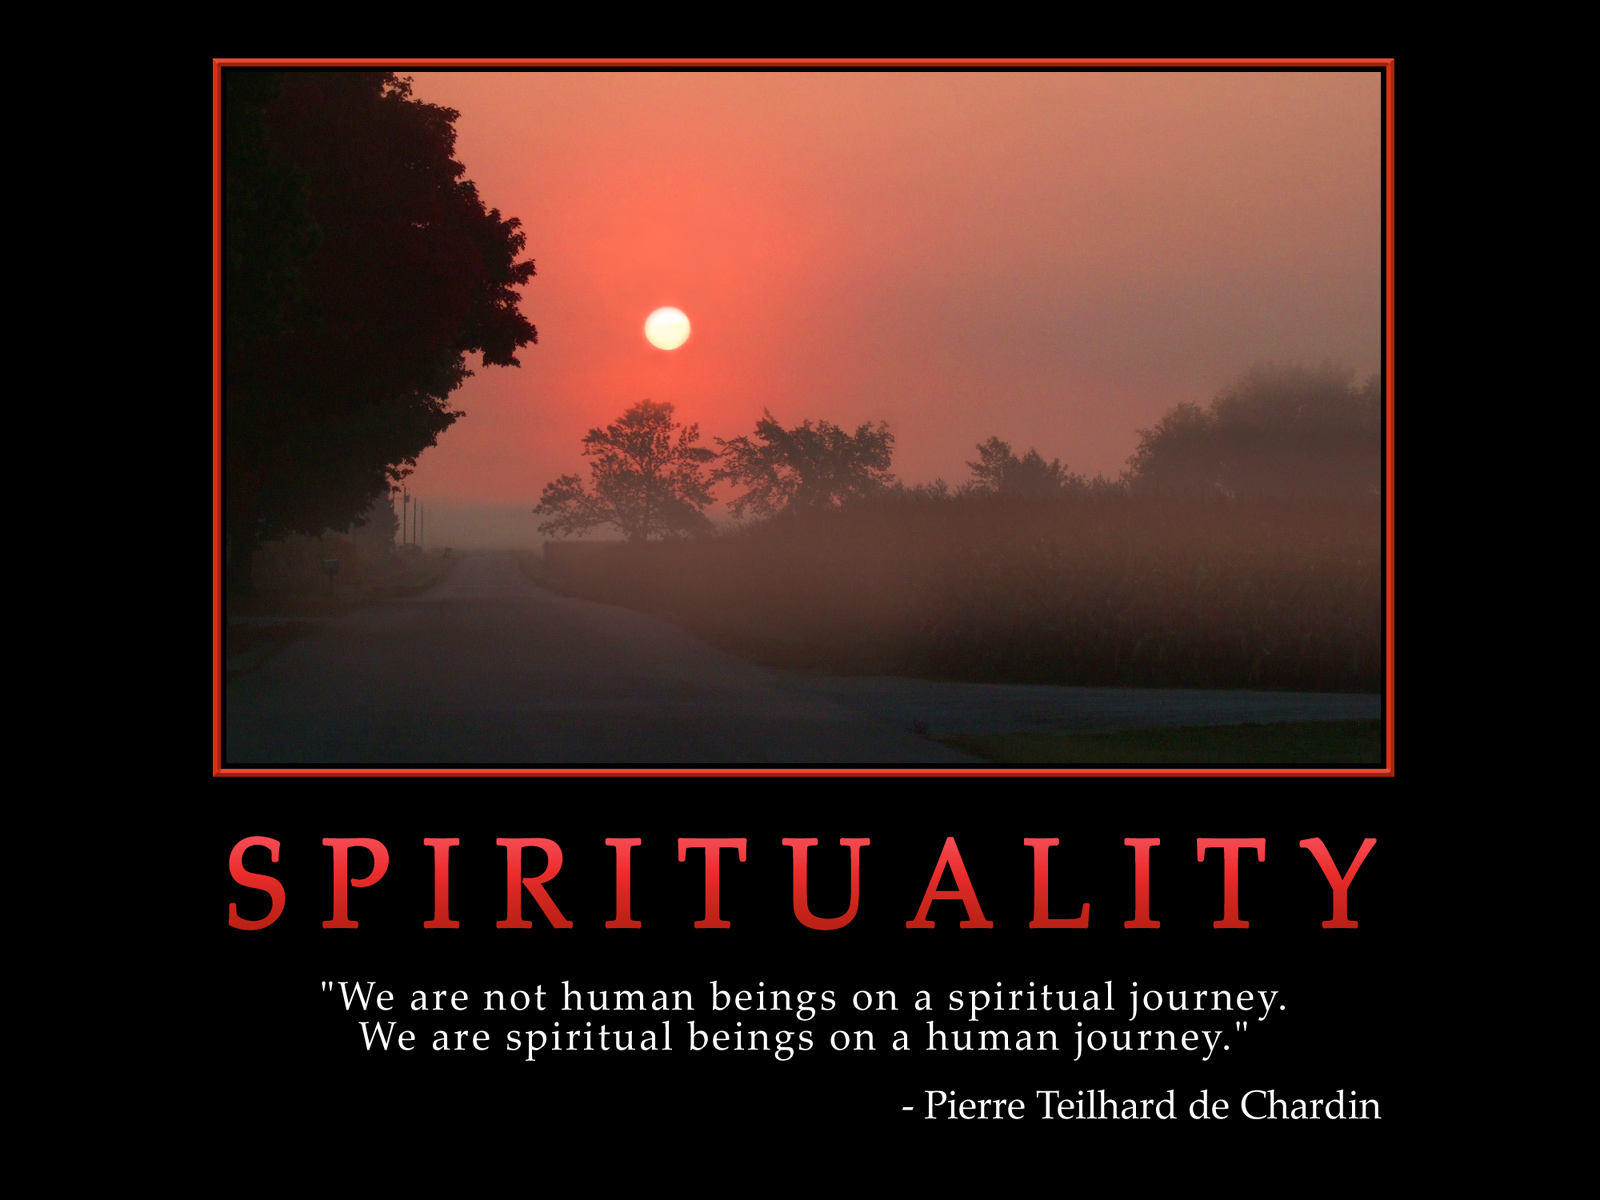 spirituality wallpaper which is under the spiritual wallpapers 1600x1200